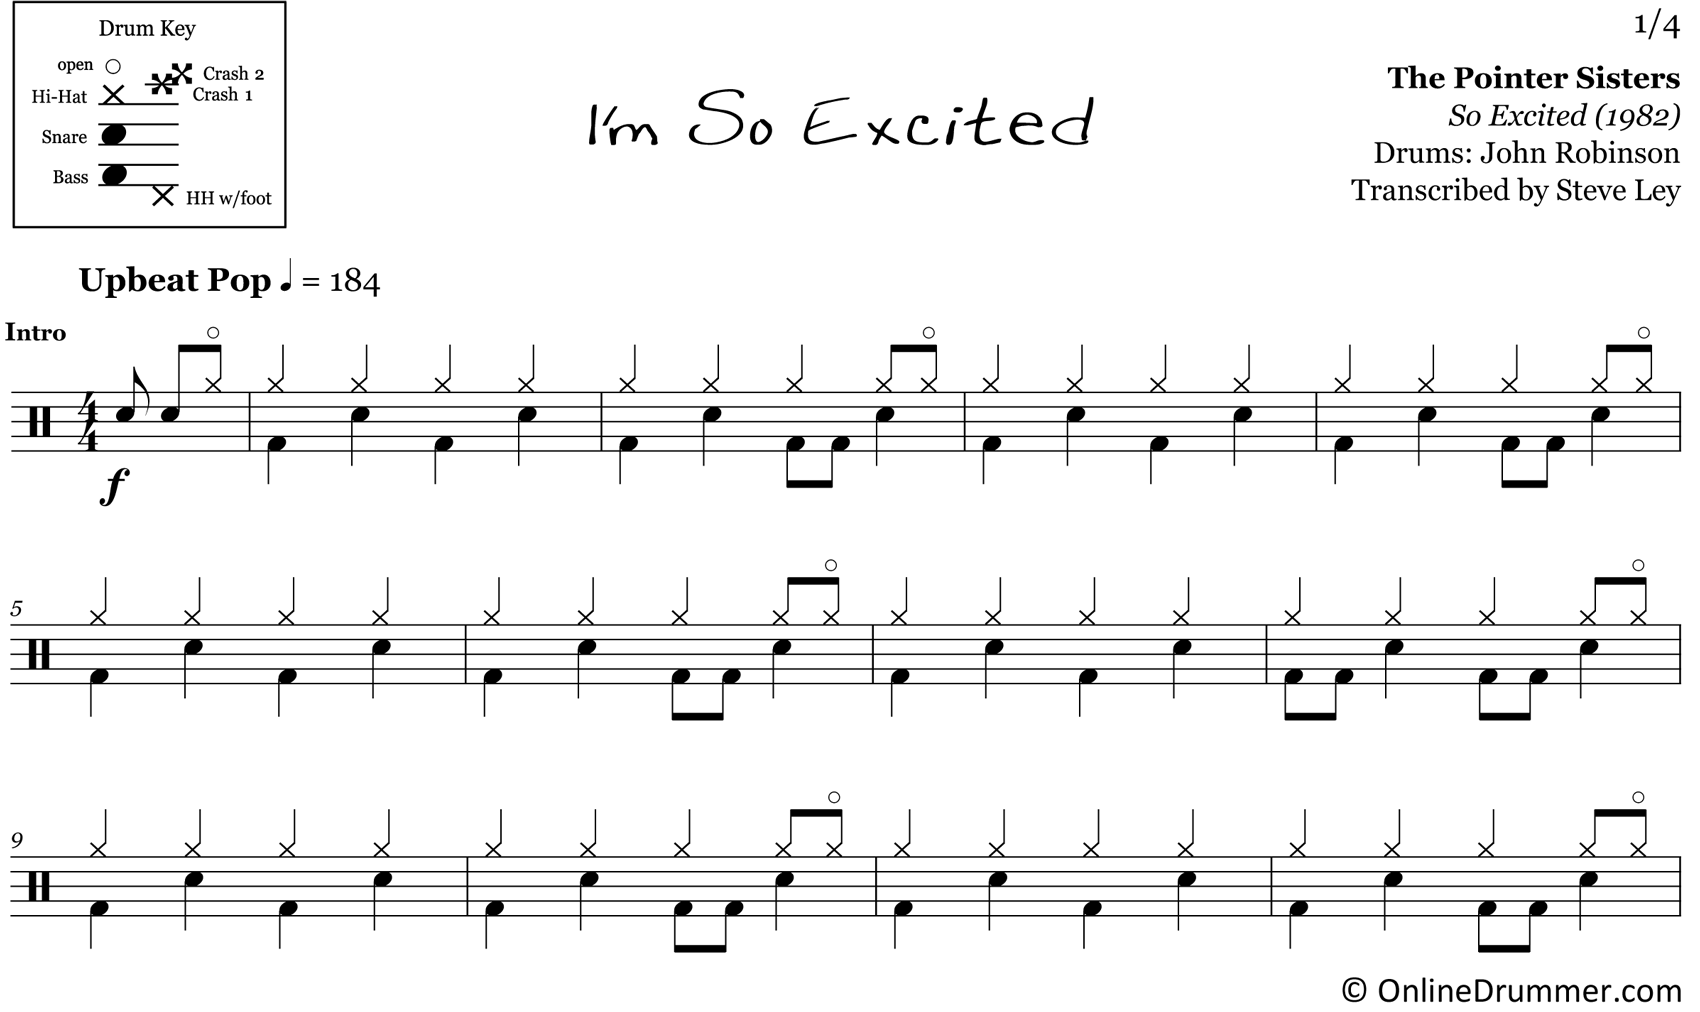 I'm So Excited - The Pointer Sisters - Drum Sheet Music